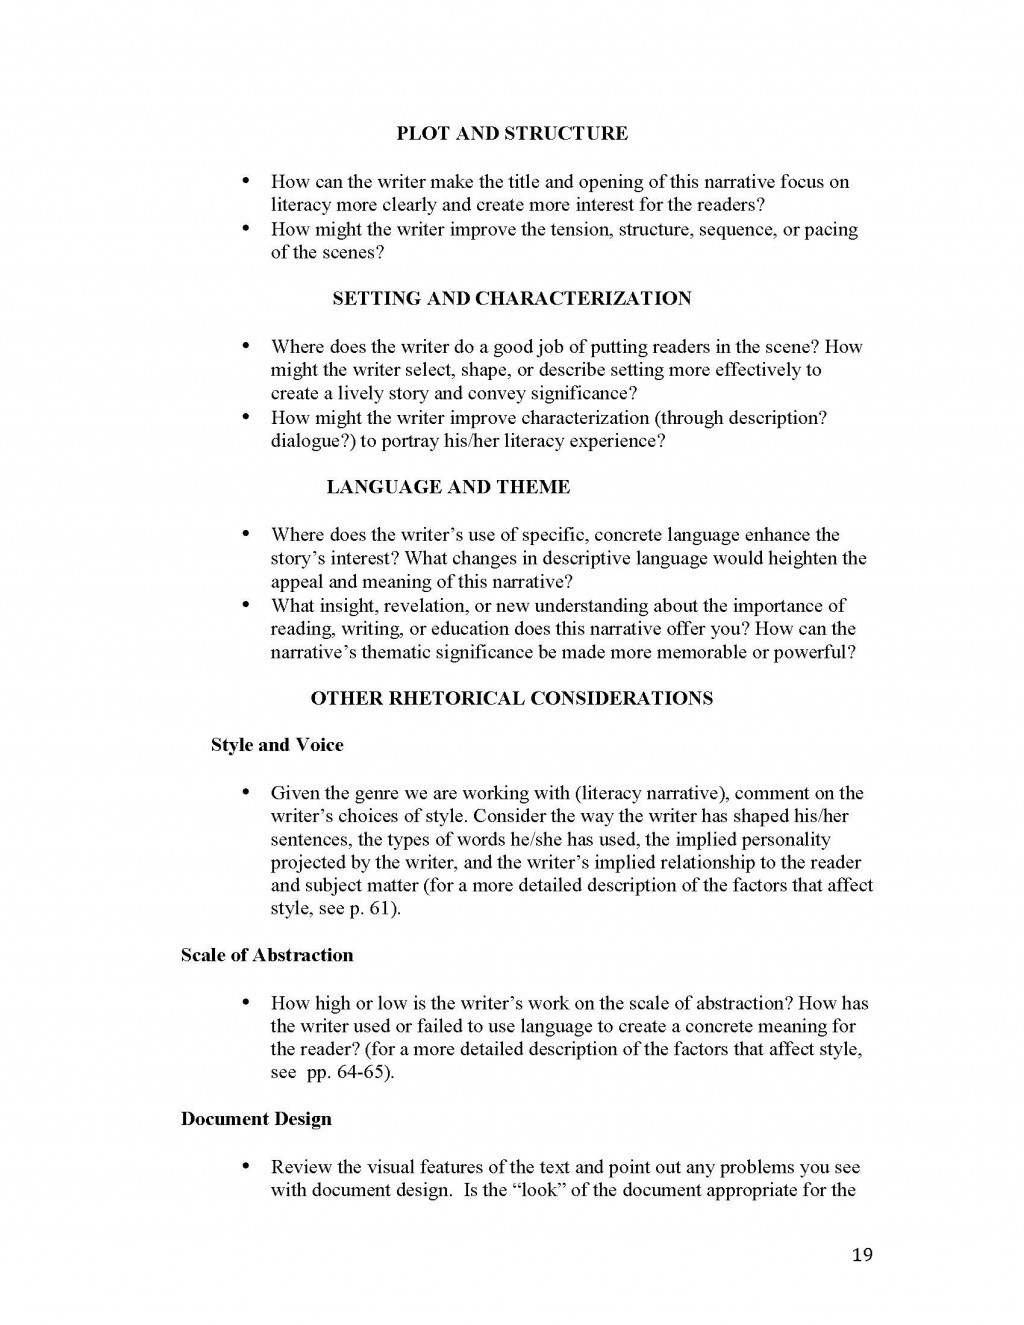 003 Essay About Immigration Unit 1 Literacy Narrative Instructor Copy Page 19 Marvelous In Canada Causes The United States Large